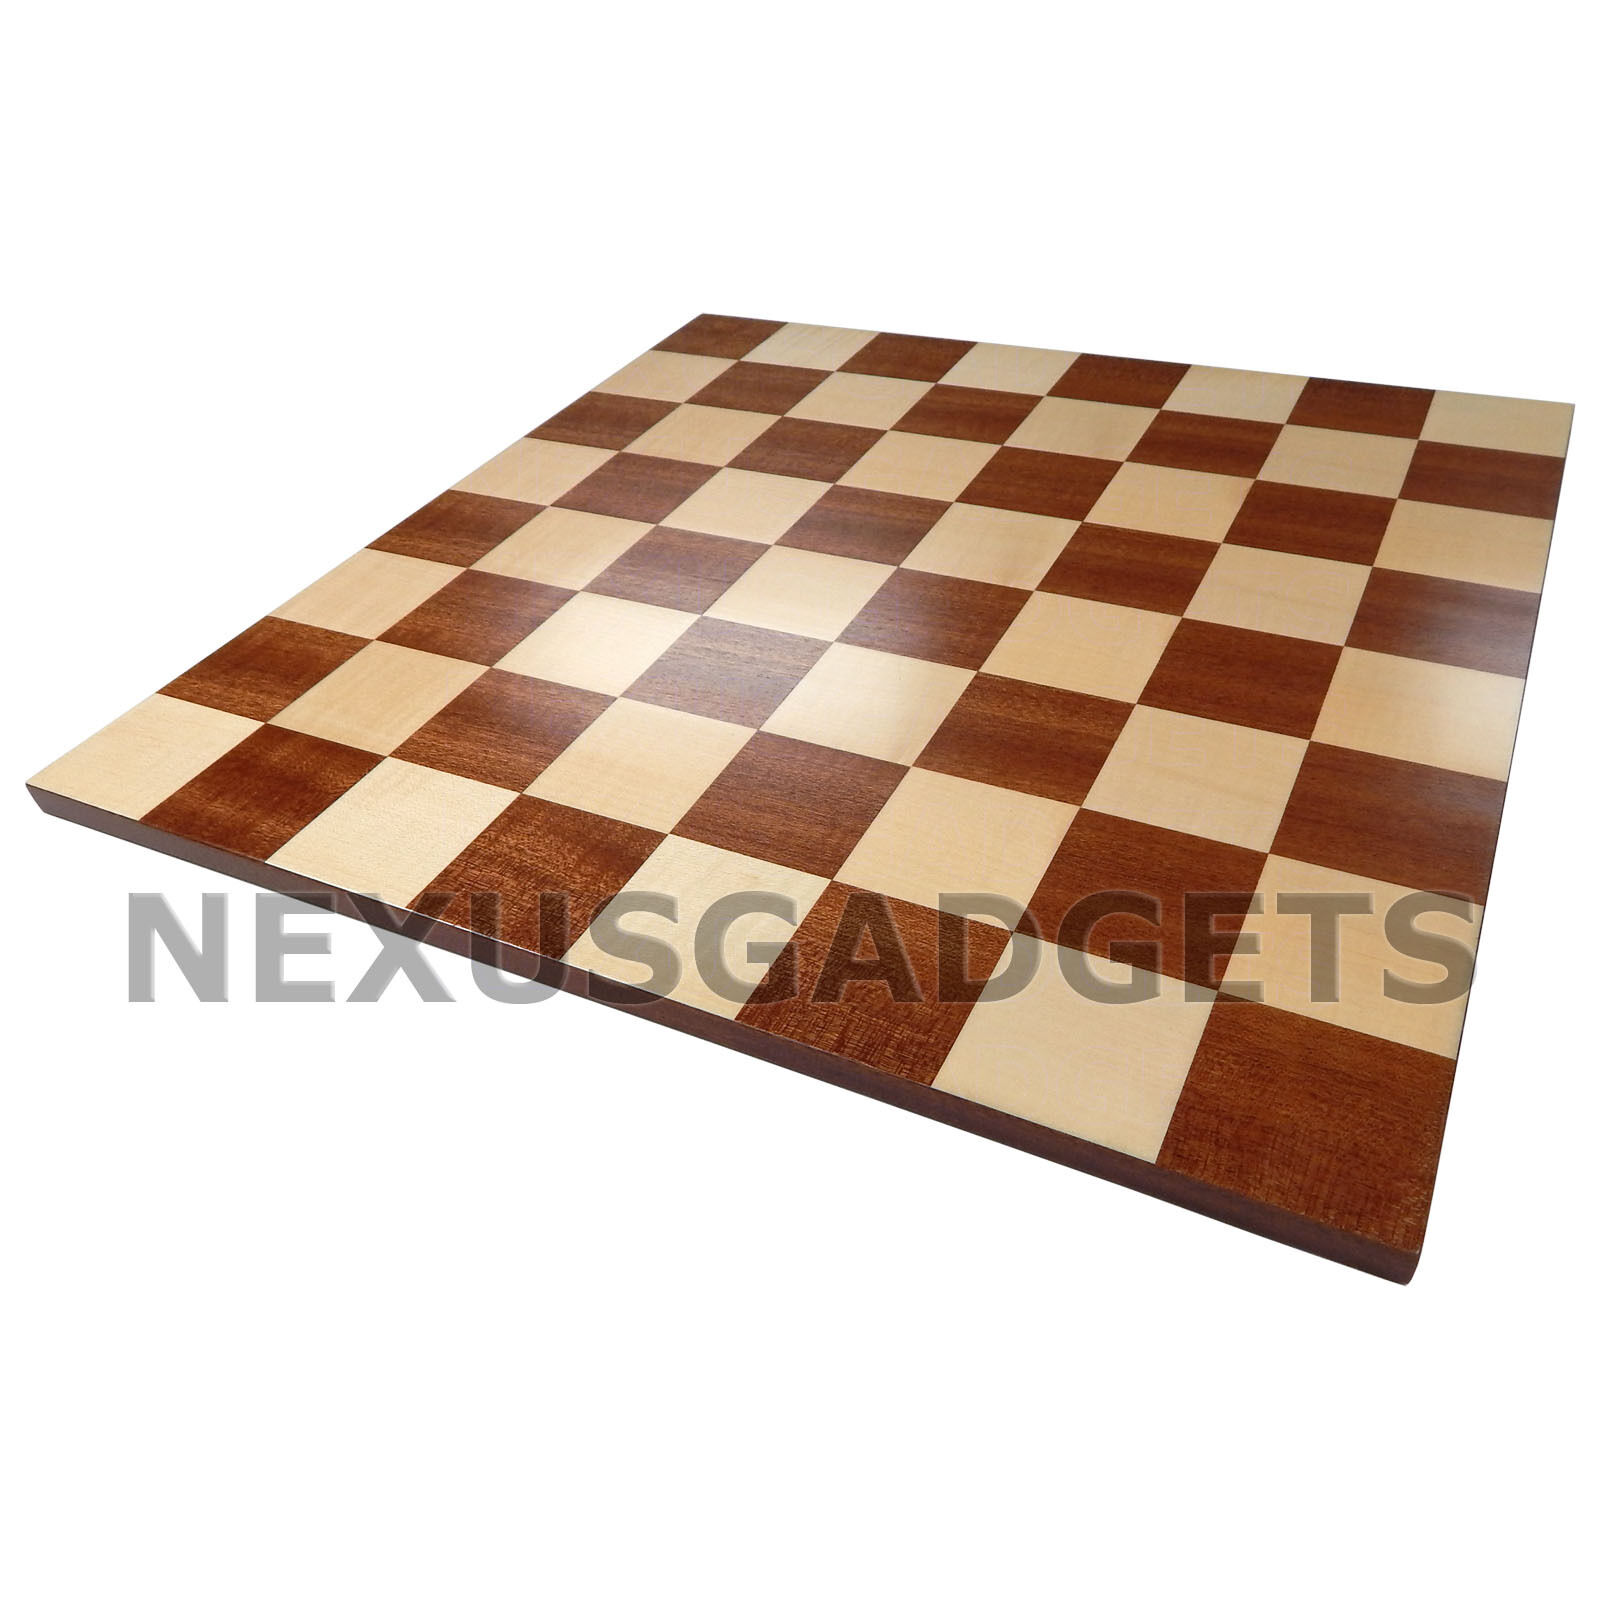 Zoric 18 Borderless Tournament Chess Board - BOARD ONLY